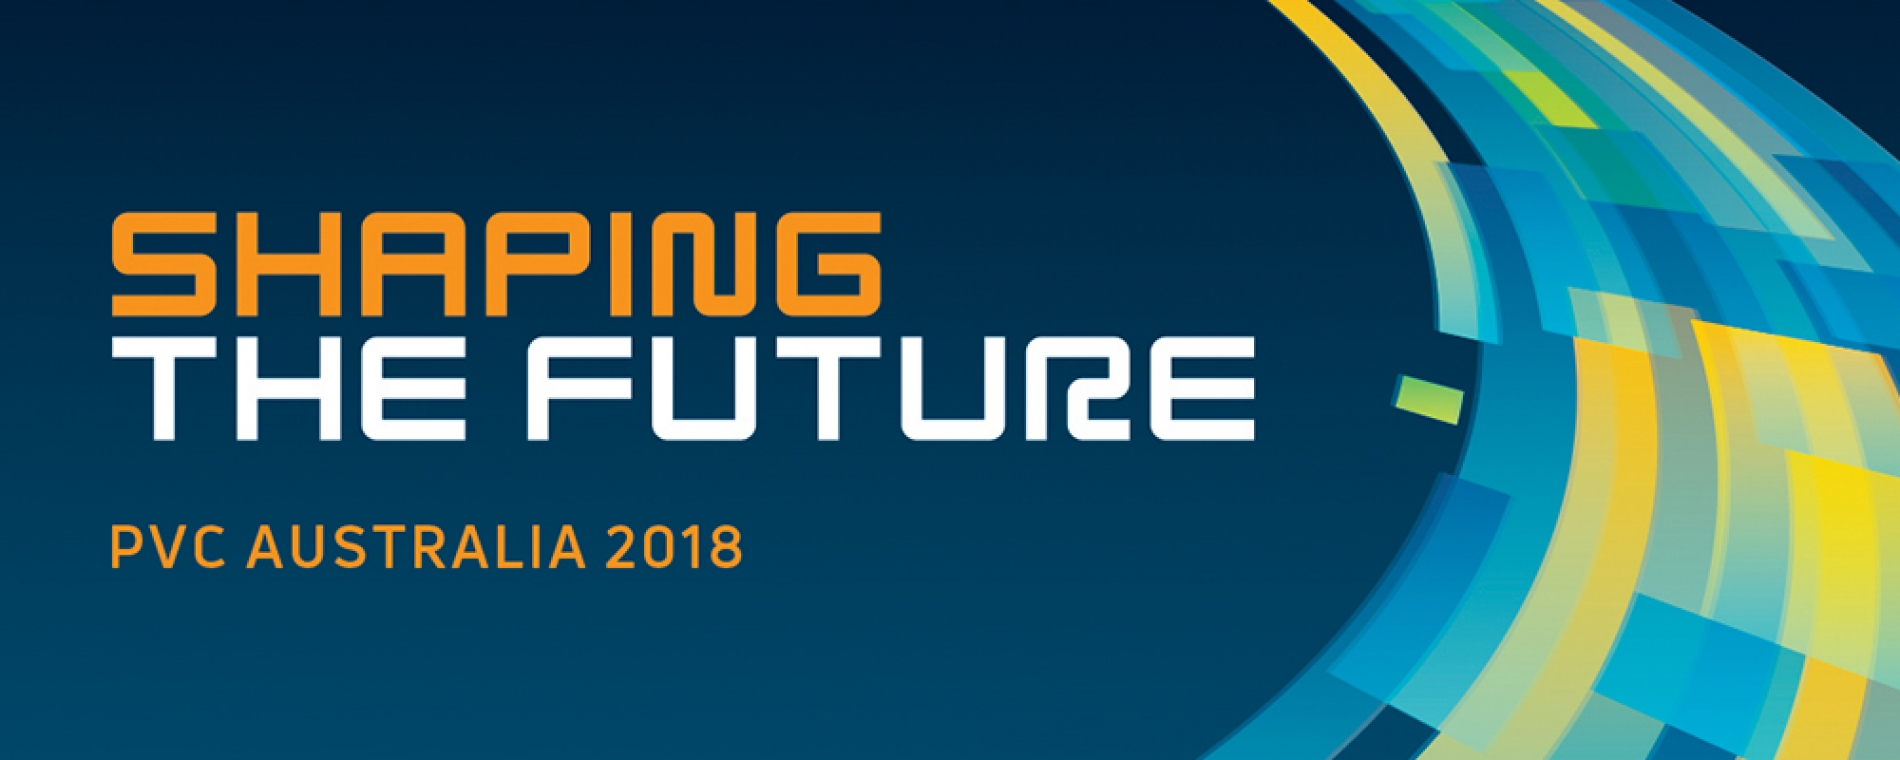 PVC AUS 2018: Shaping the Future - Open for Registrations